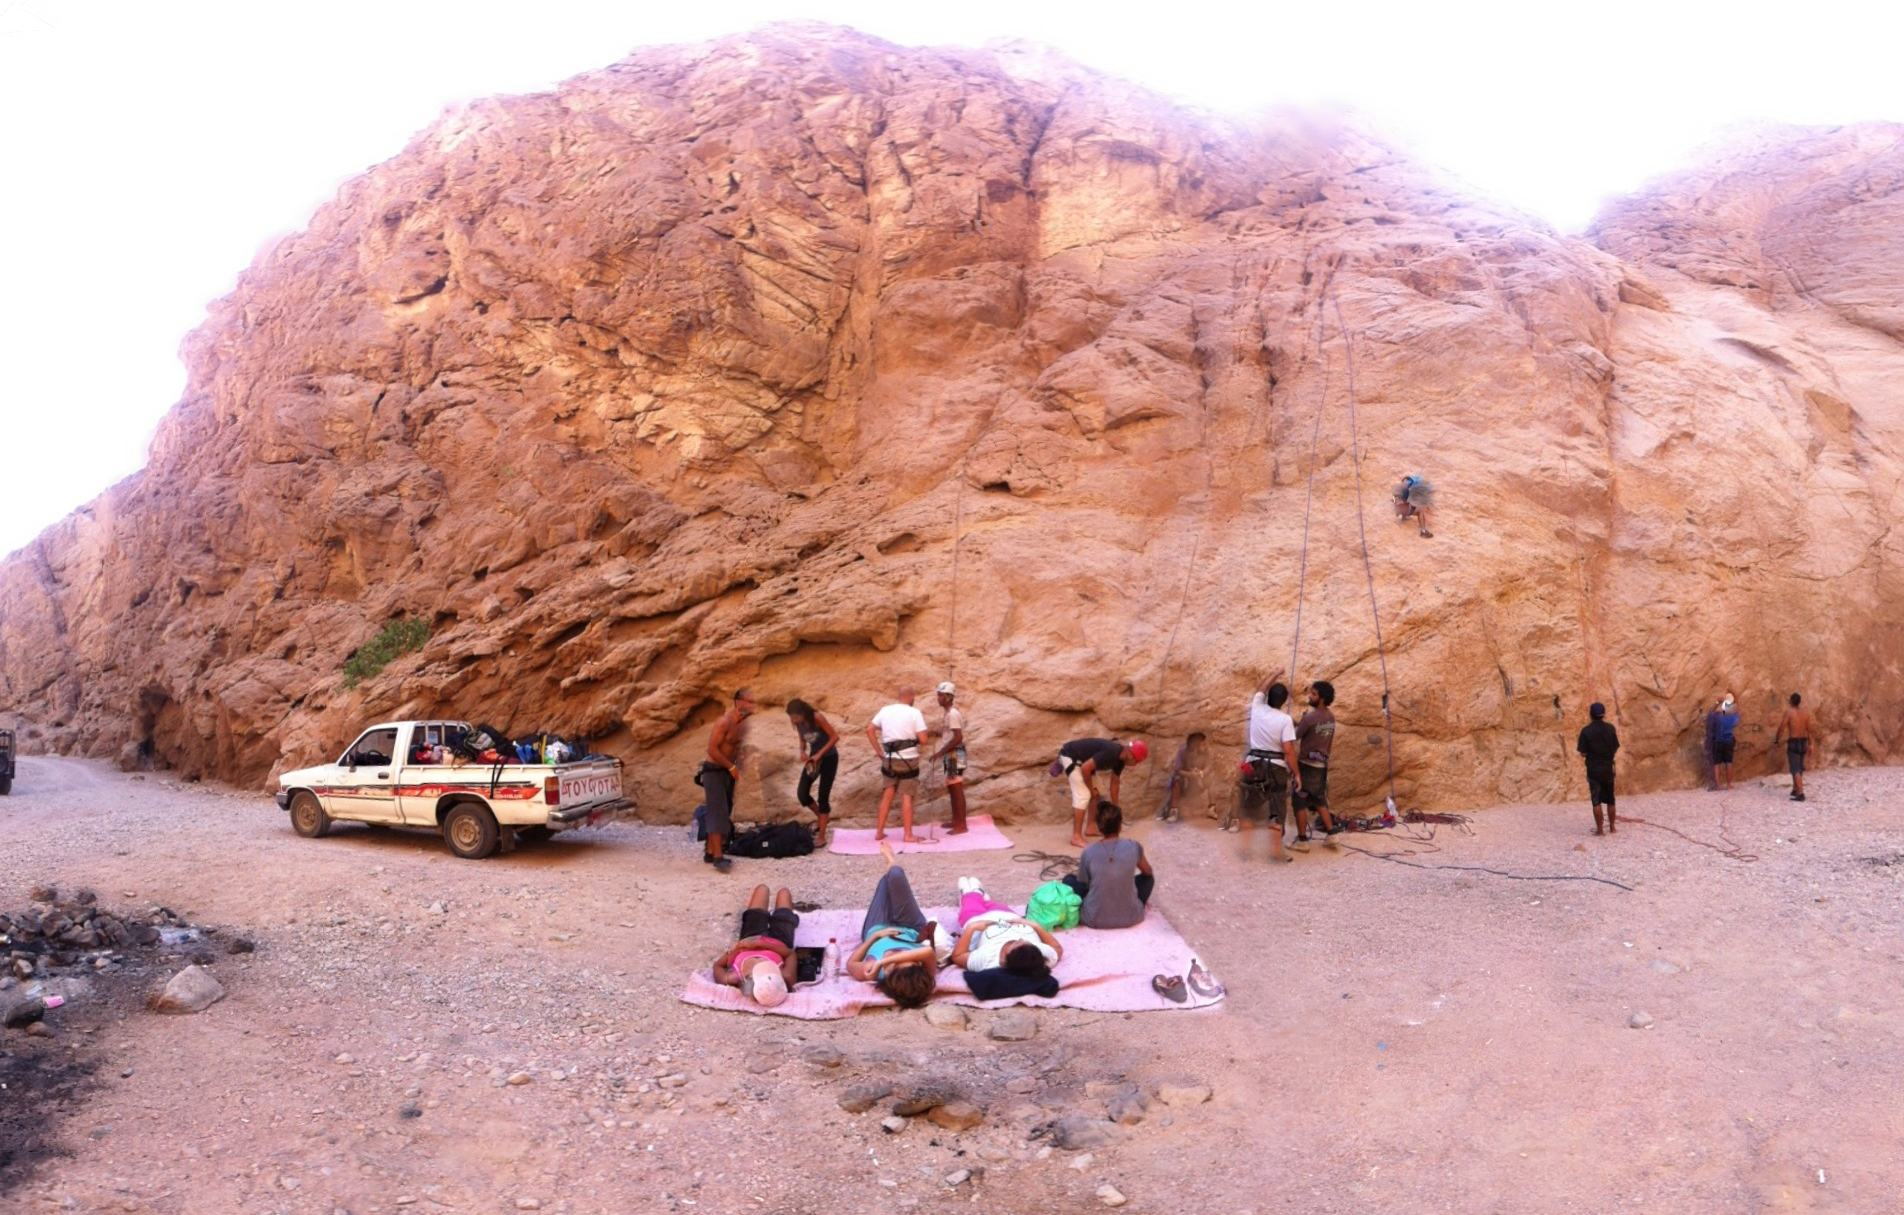 One of the climbing sites in Wadi Genai Rahim Hamada